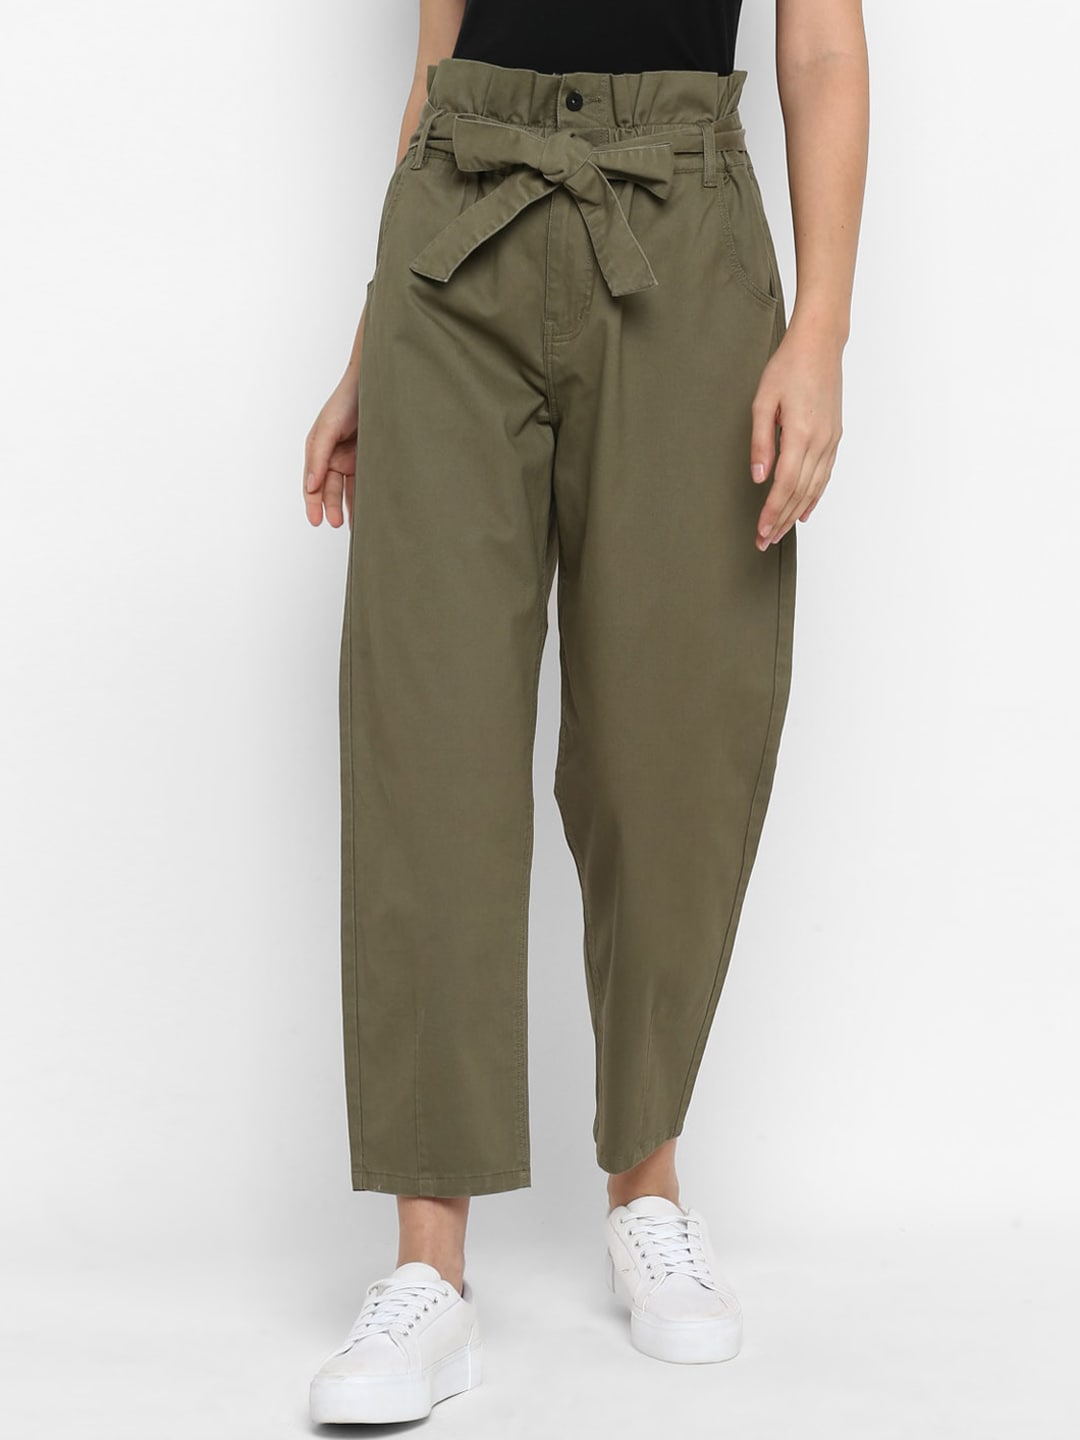 FOSH Women Olive Green Smart Regular Fit Solid Parallel Trousers